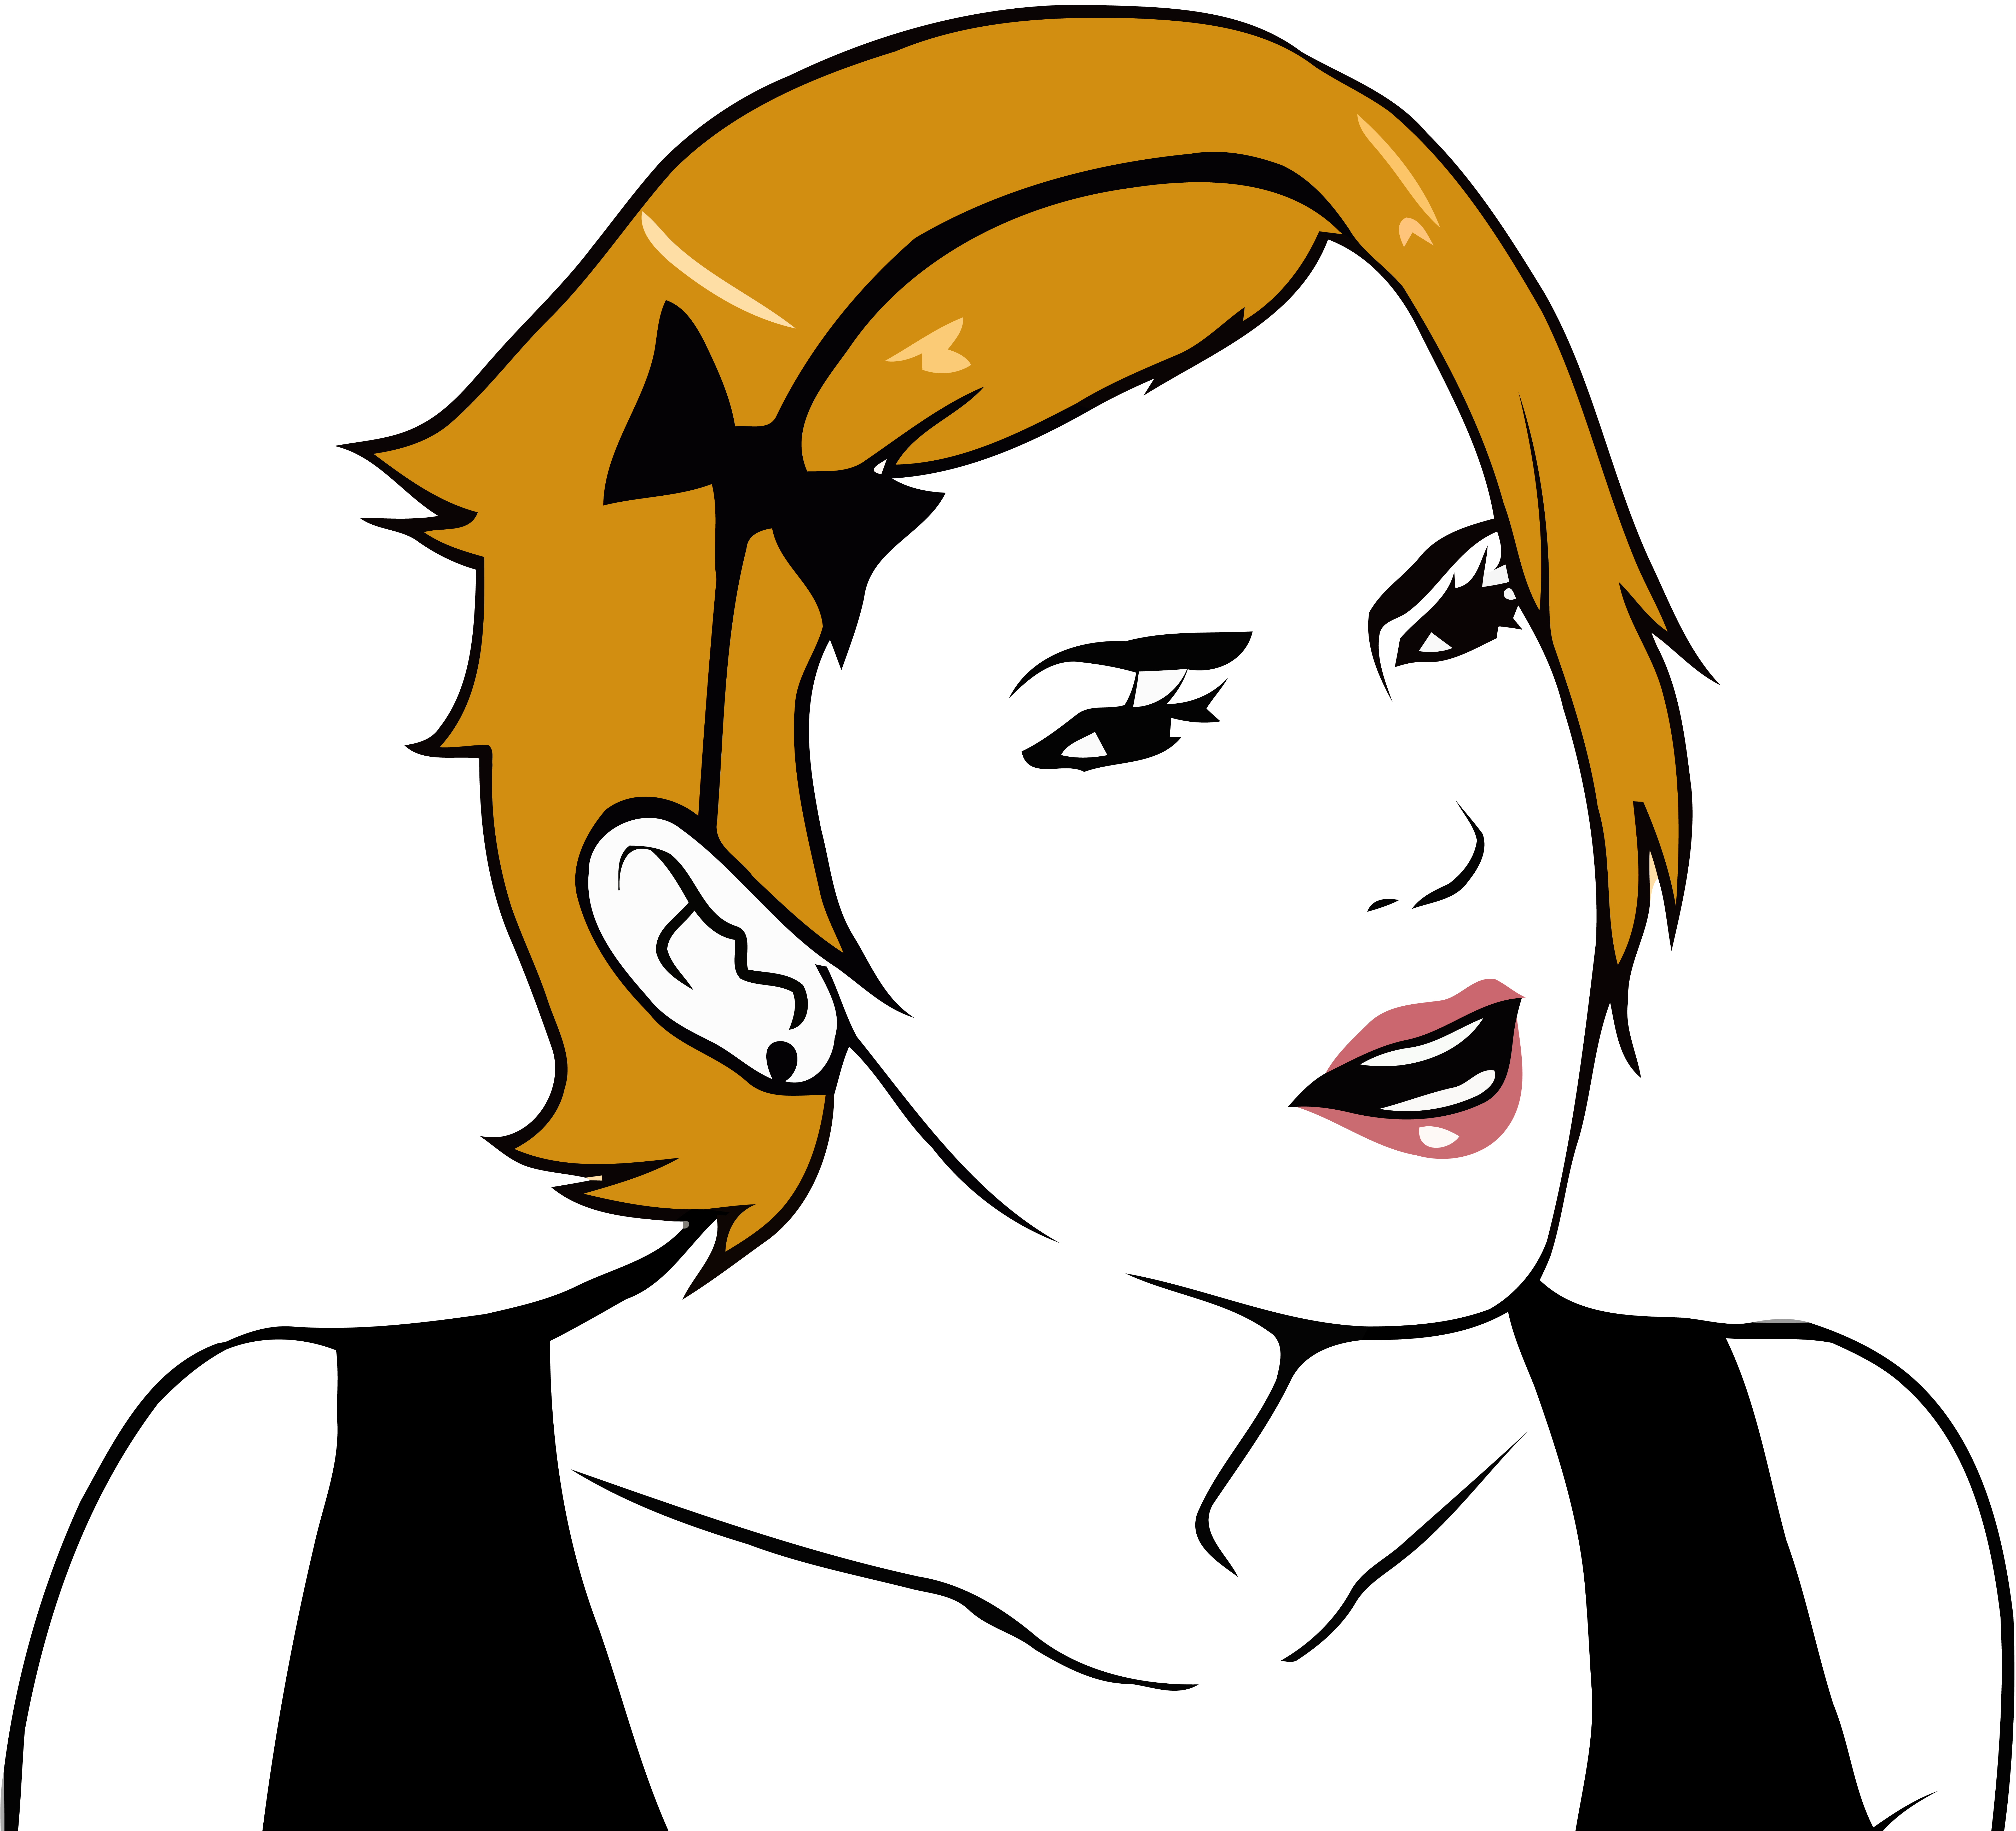 are_you_serious__girl_by_rober_raik d4clqty are you serious? girl by rober raik on deviantart